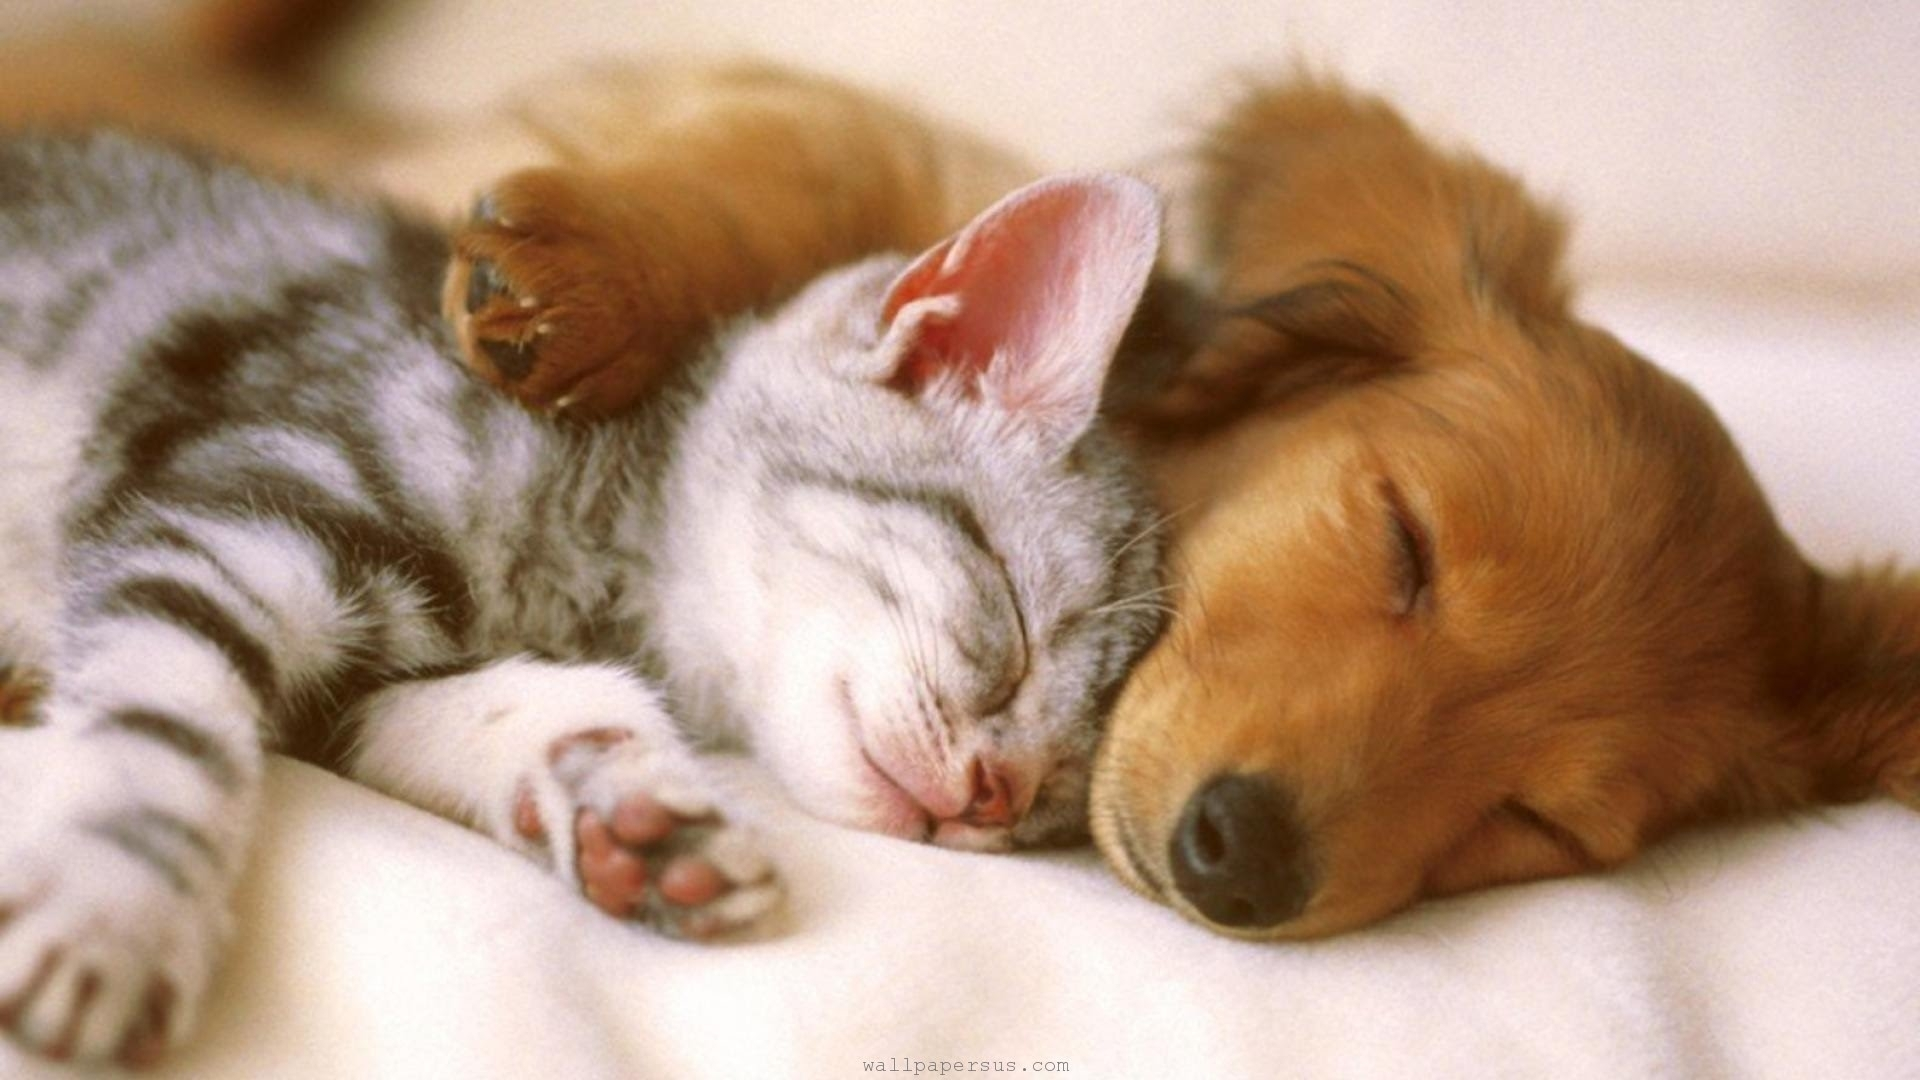 cutest kittens & puppies falling asleep compilation - youtube